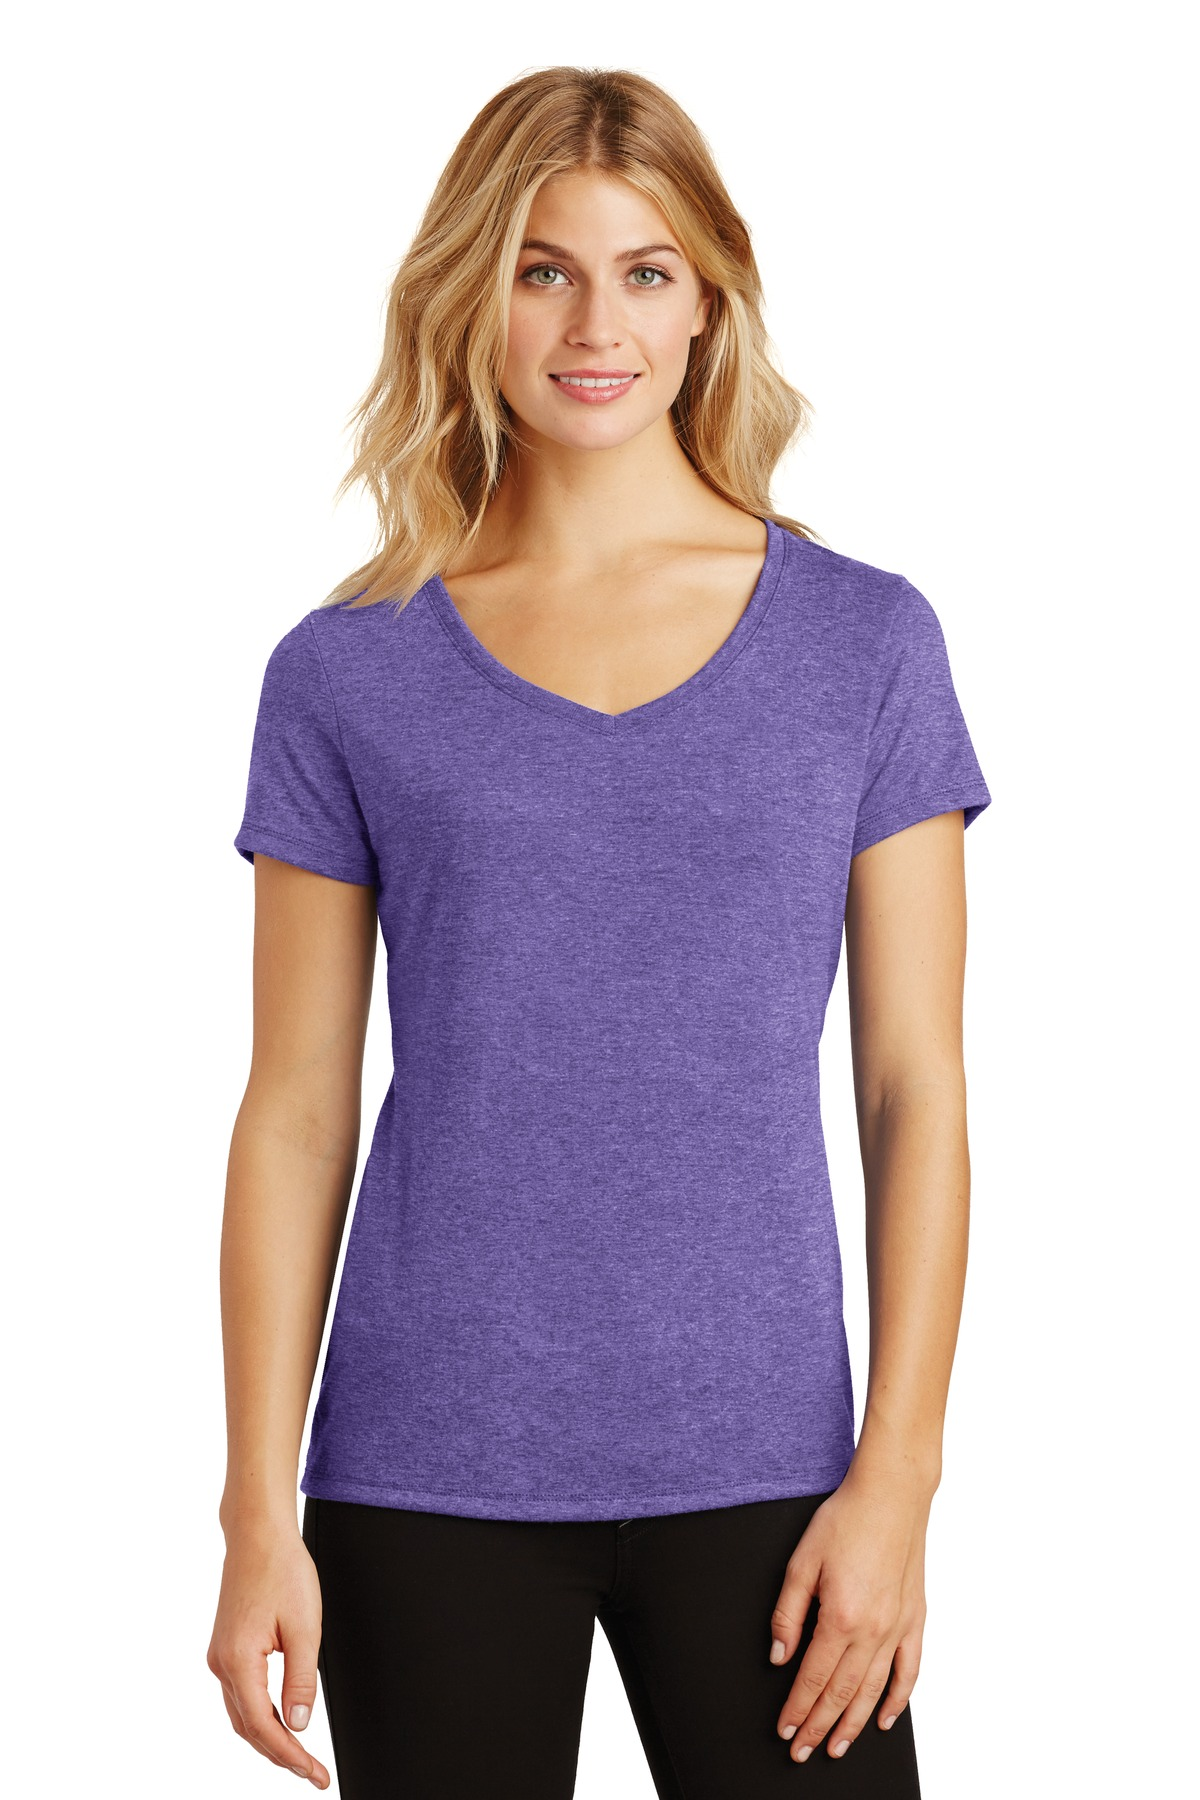 District ®  Women's Perfect Tri ®  V-Neck Tee. DM1350L - Purple Frost